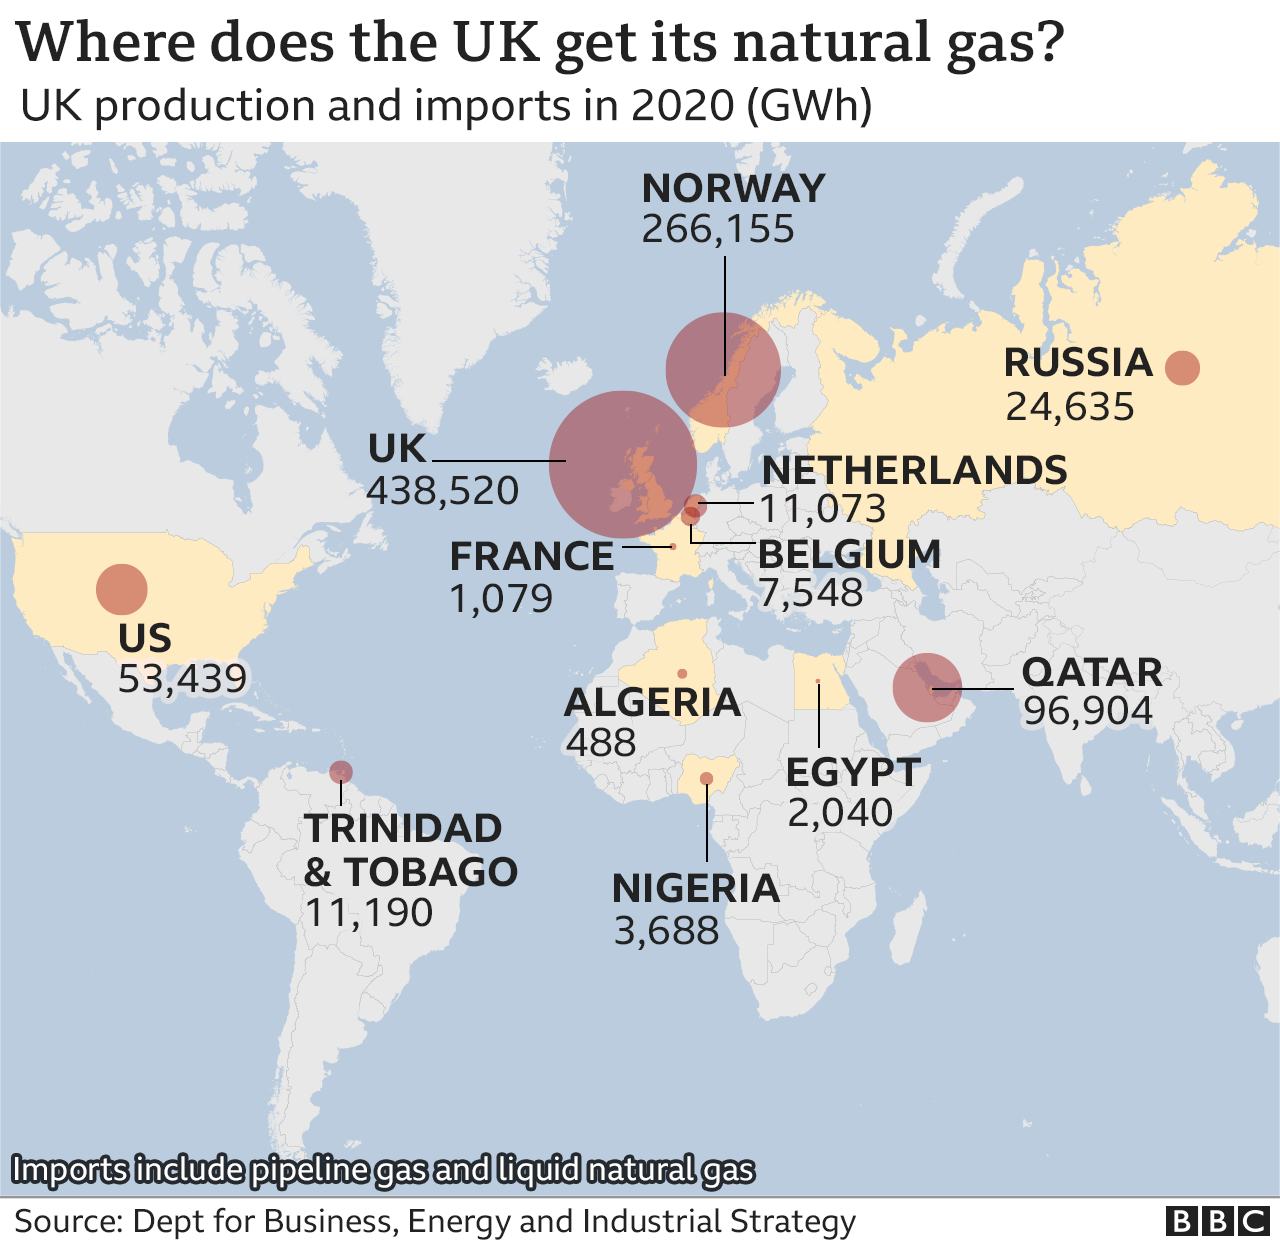 Map showing where the UK gets its natural gas from